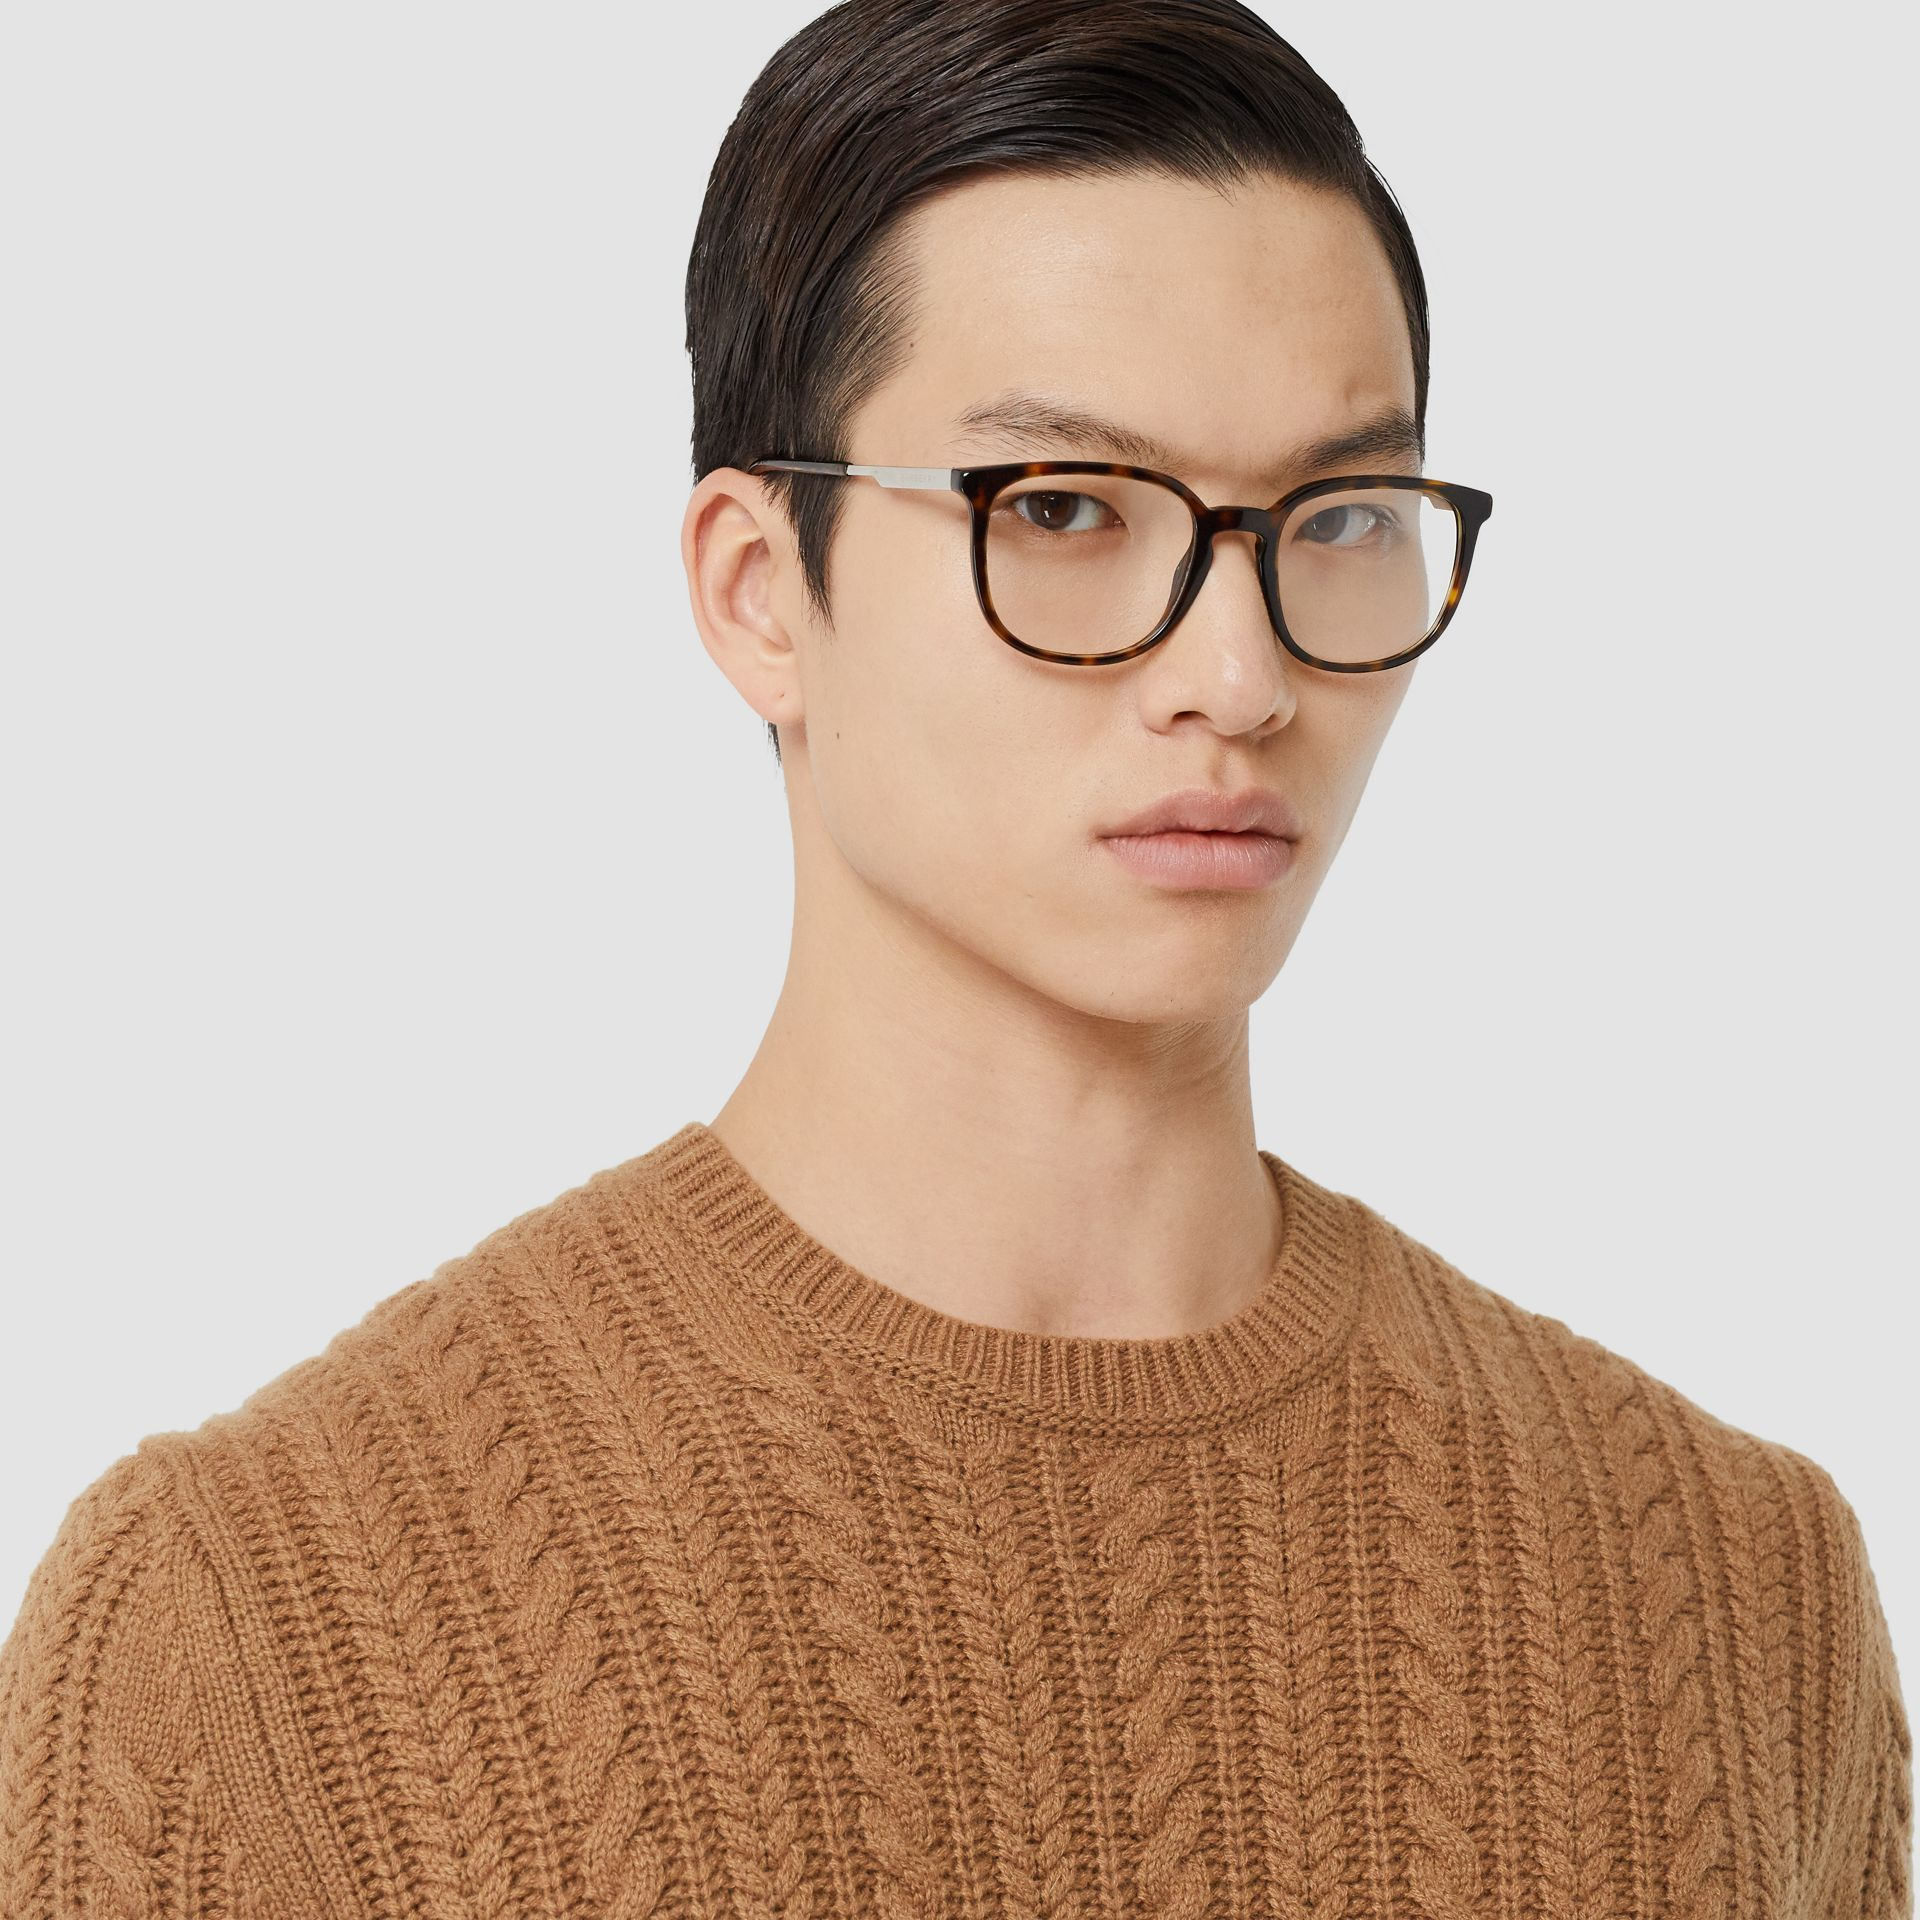 Cable Knit Cashmere Sweater in Maple - Men | Burberry - gallery image 1